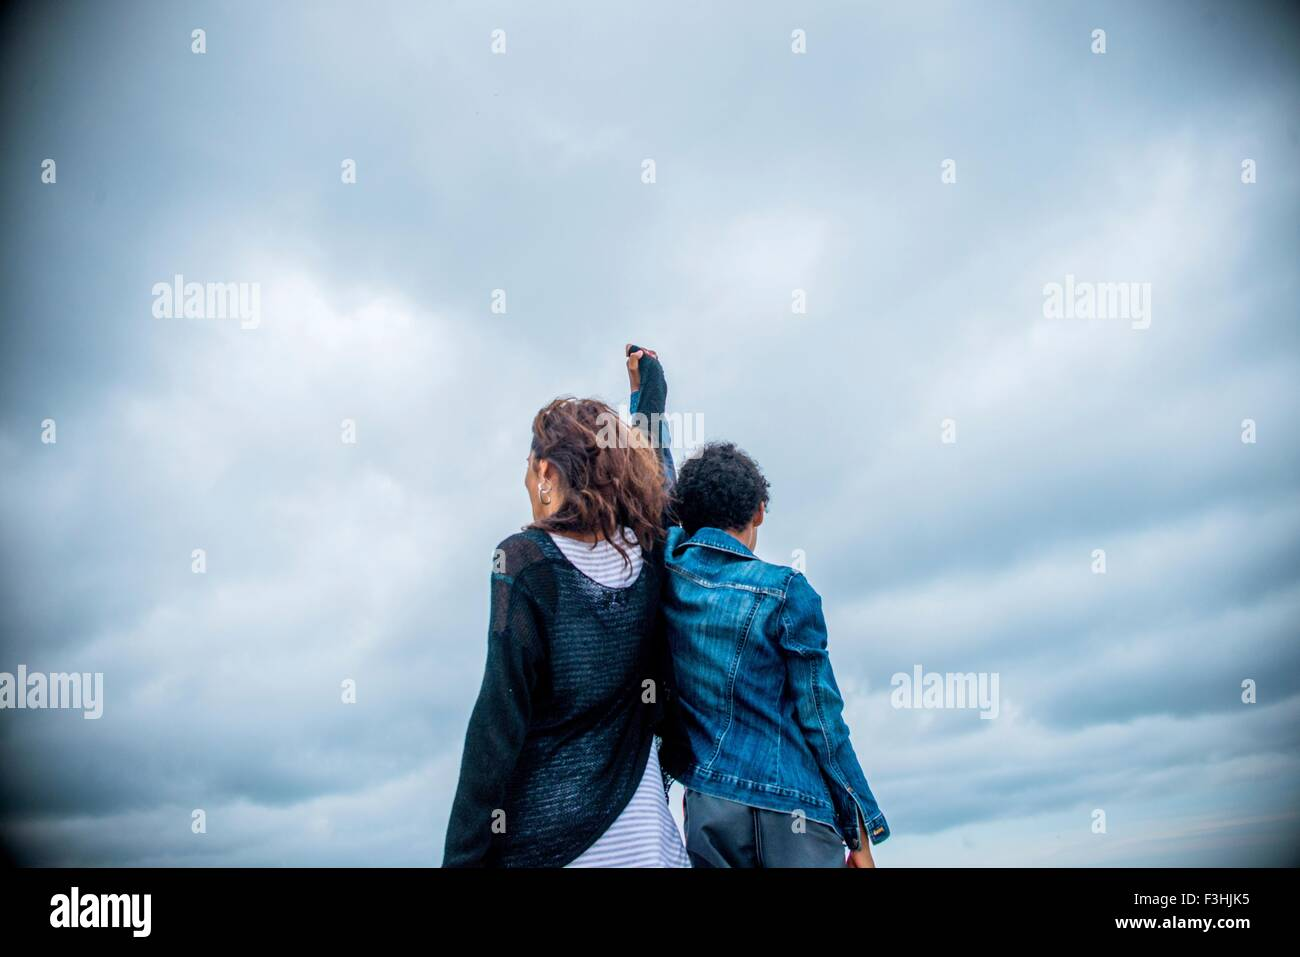 Rear view of mature woman and son shoulder to shoulder against overcast sky - Stock Image